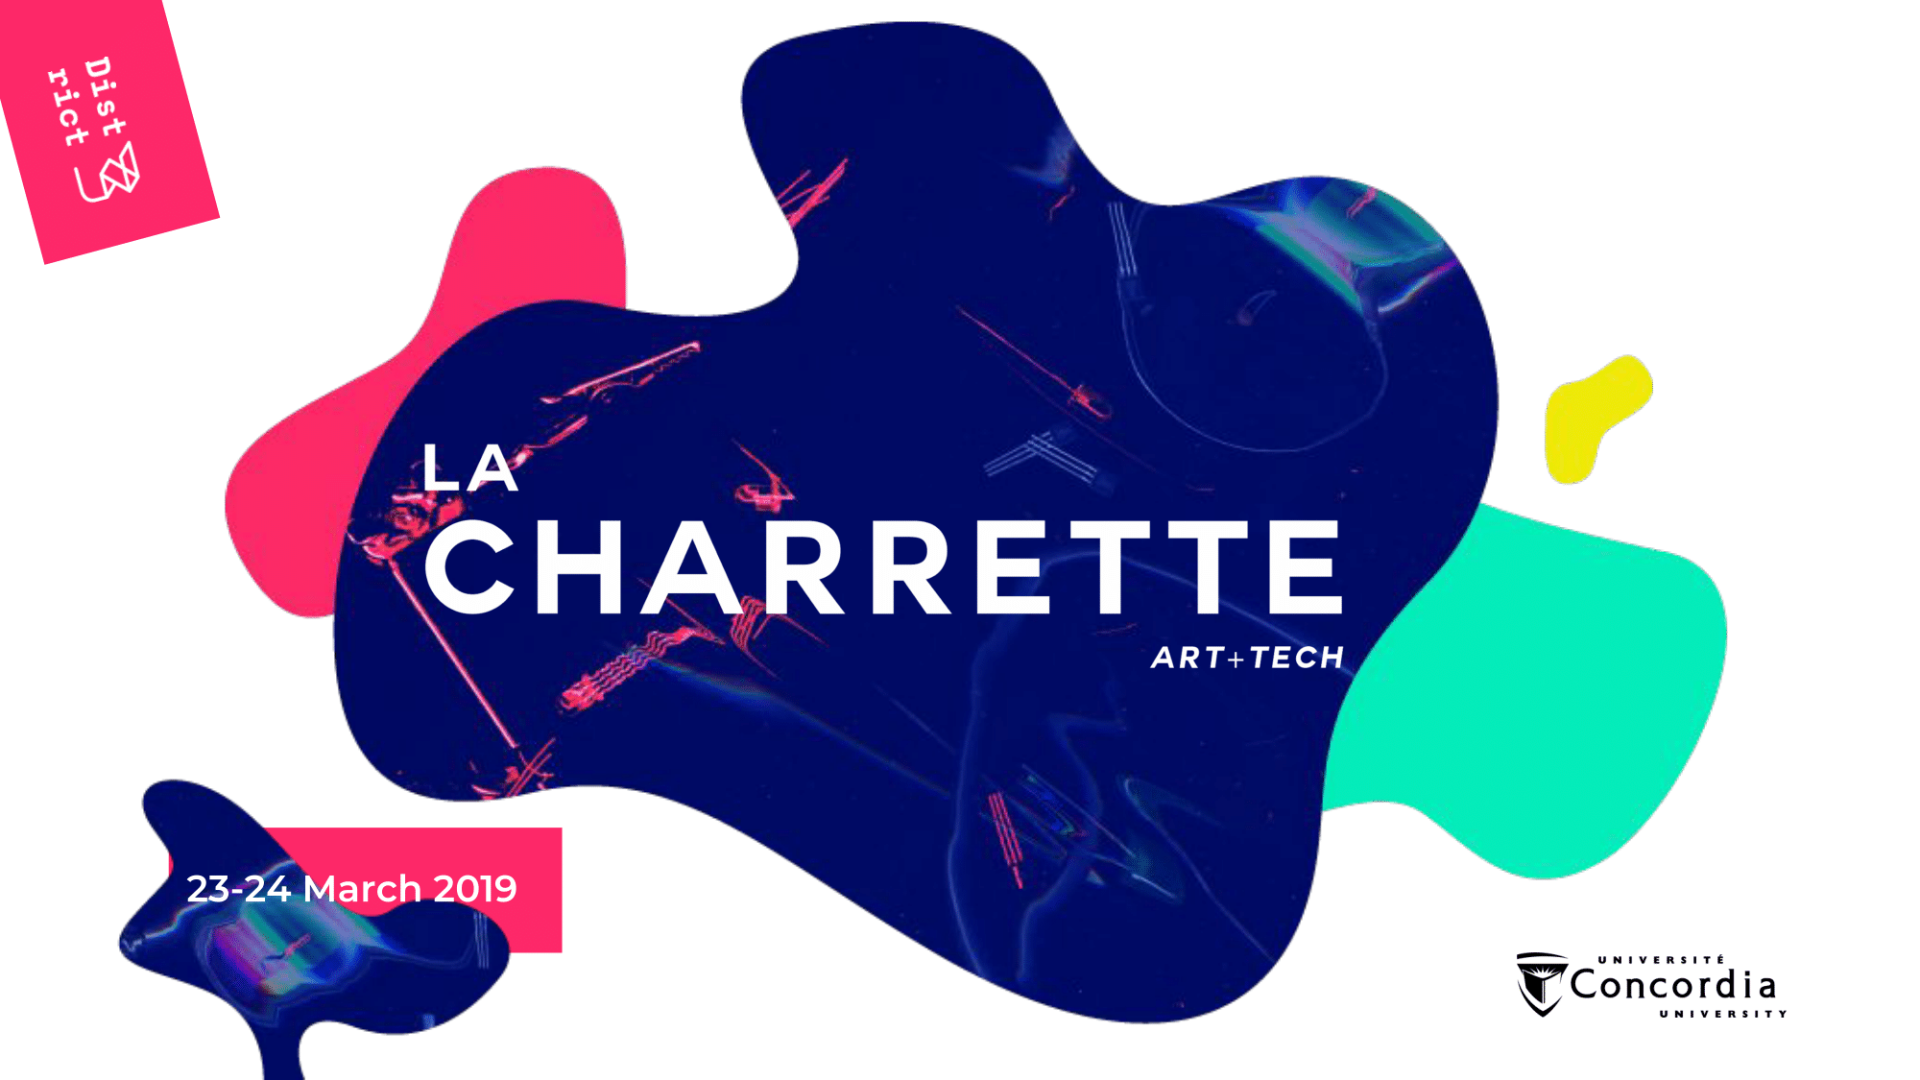 About La Charrette 2019 (dragged)-1